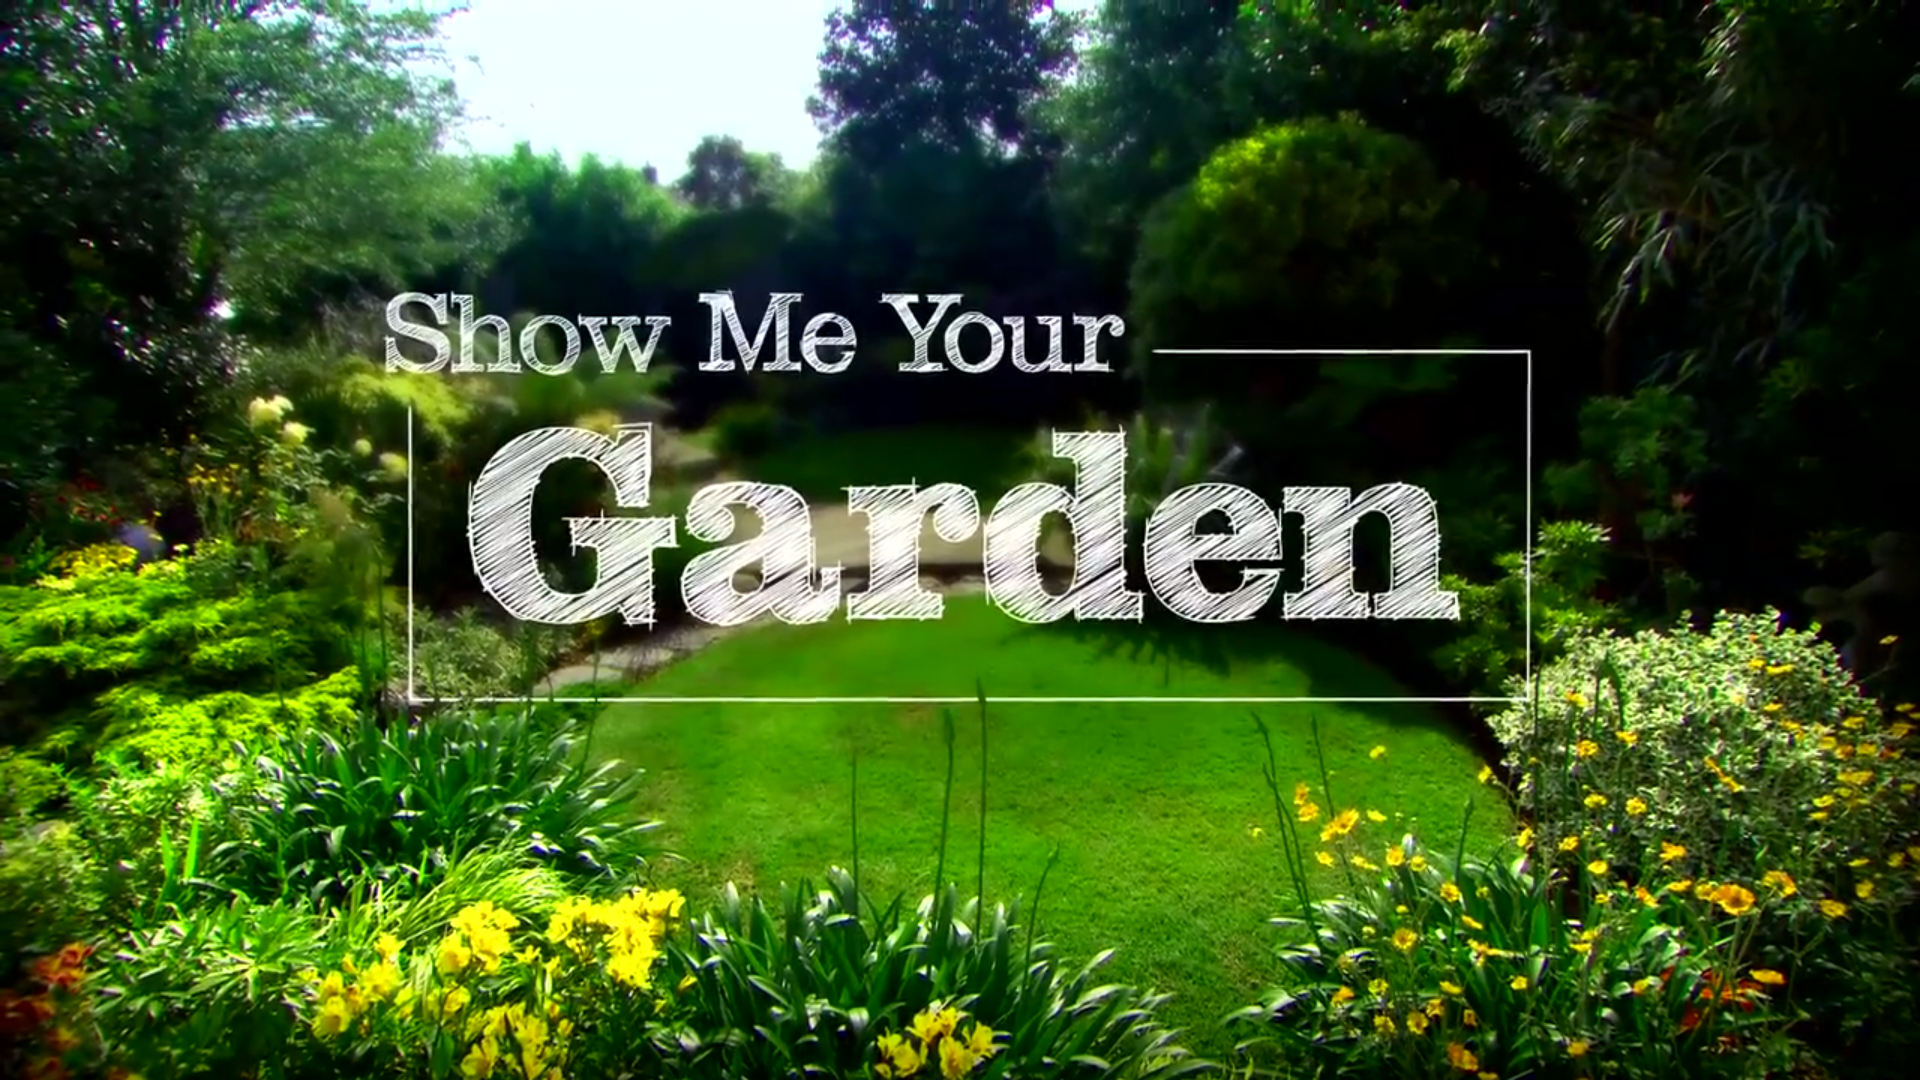 Horticulture Week – Two new gardening series announced for 2015 as Sky TV enters the sector